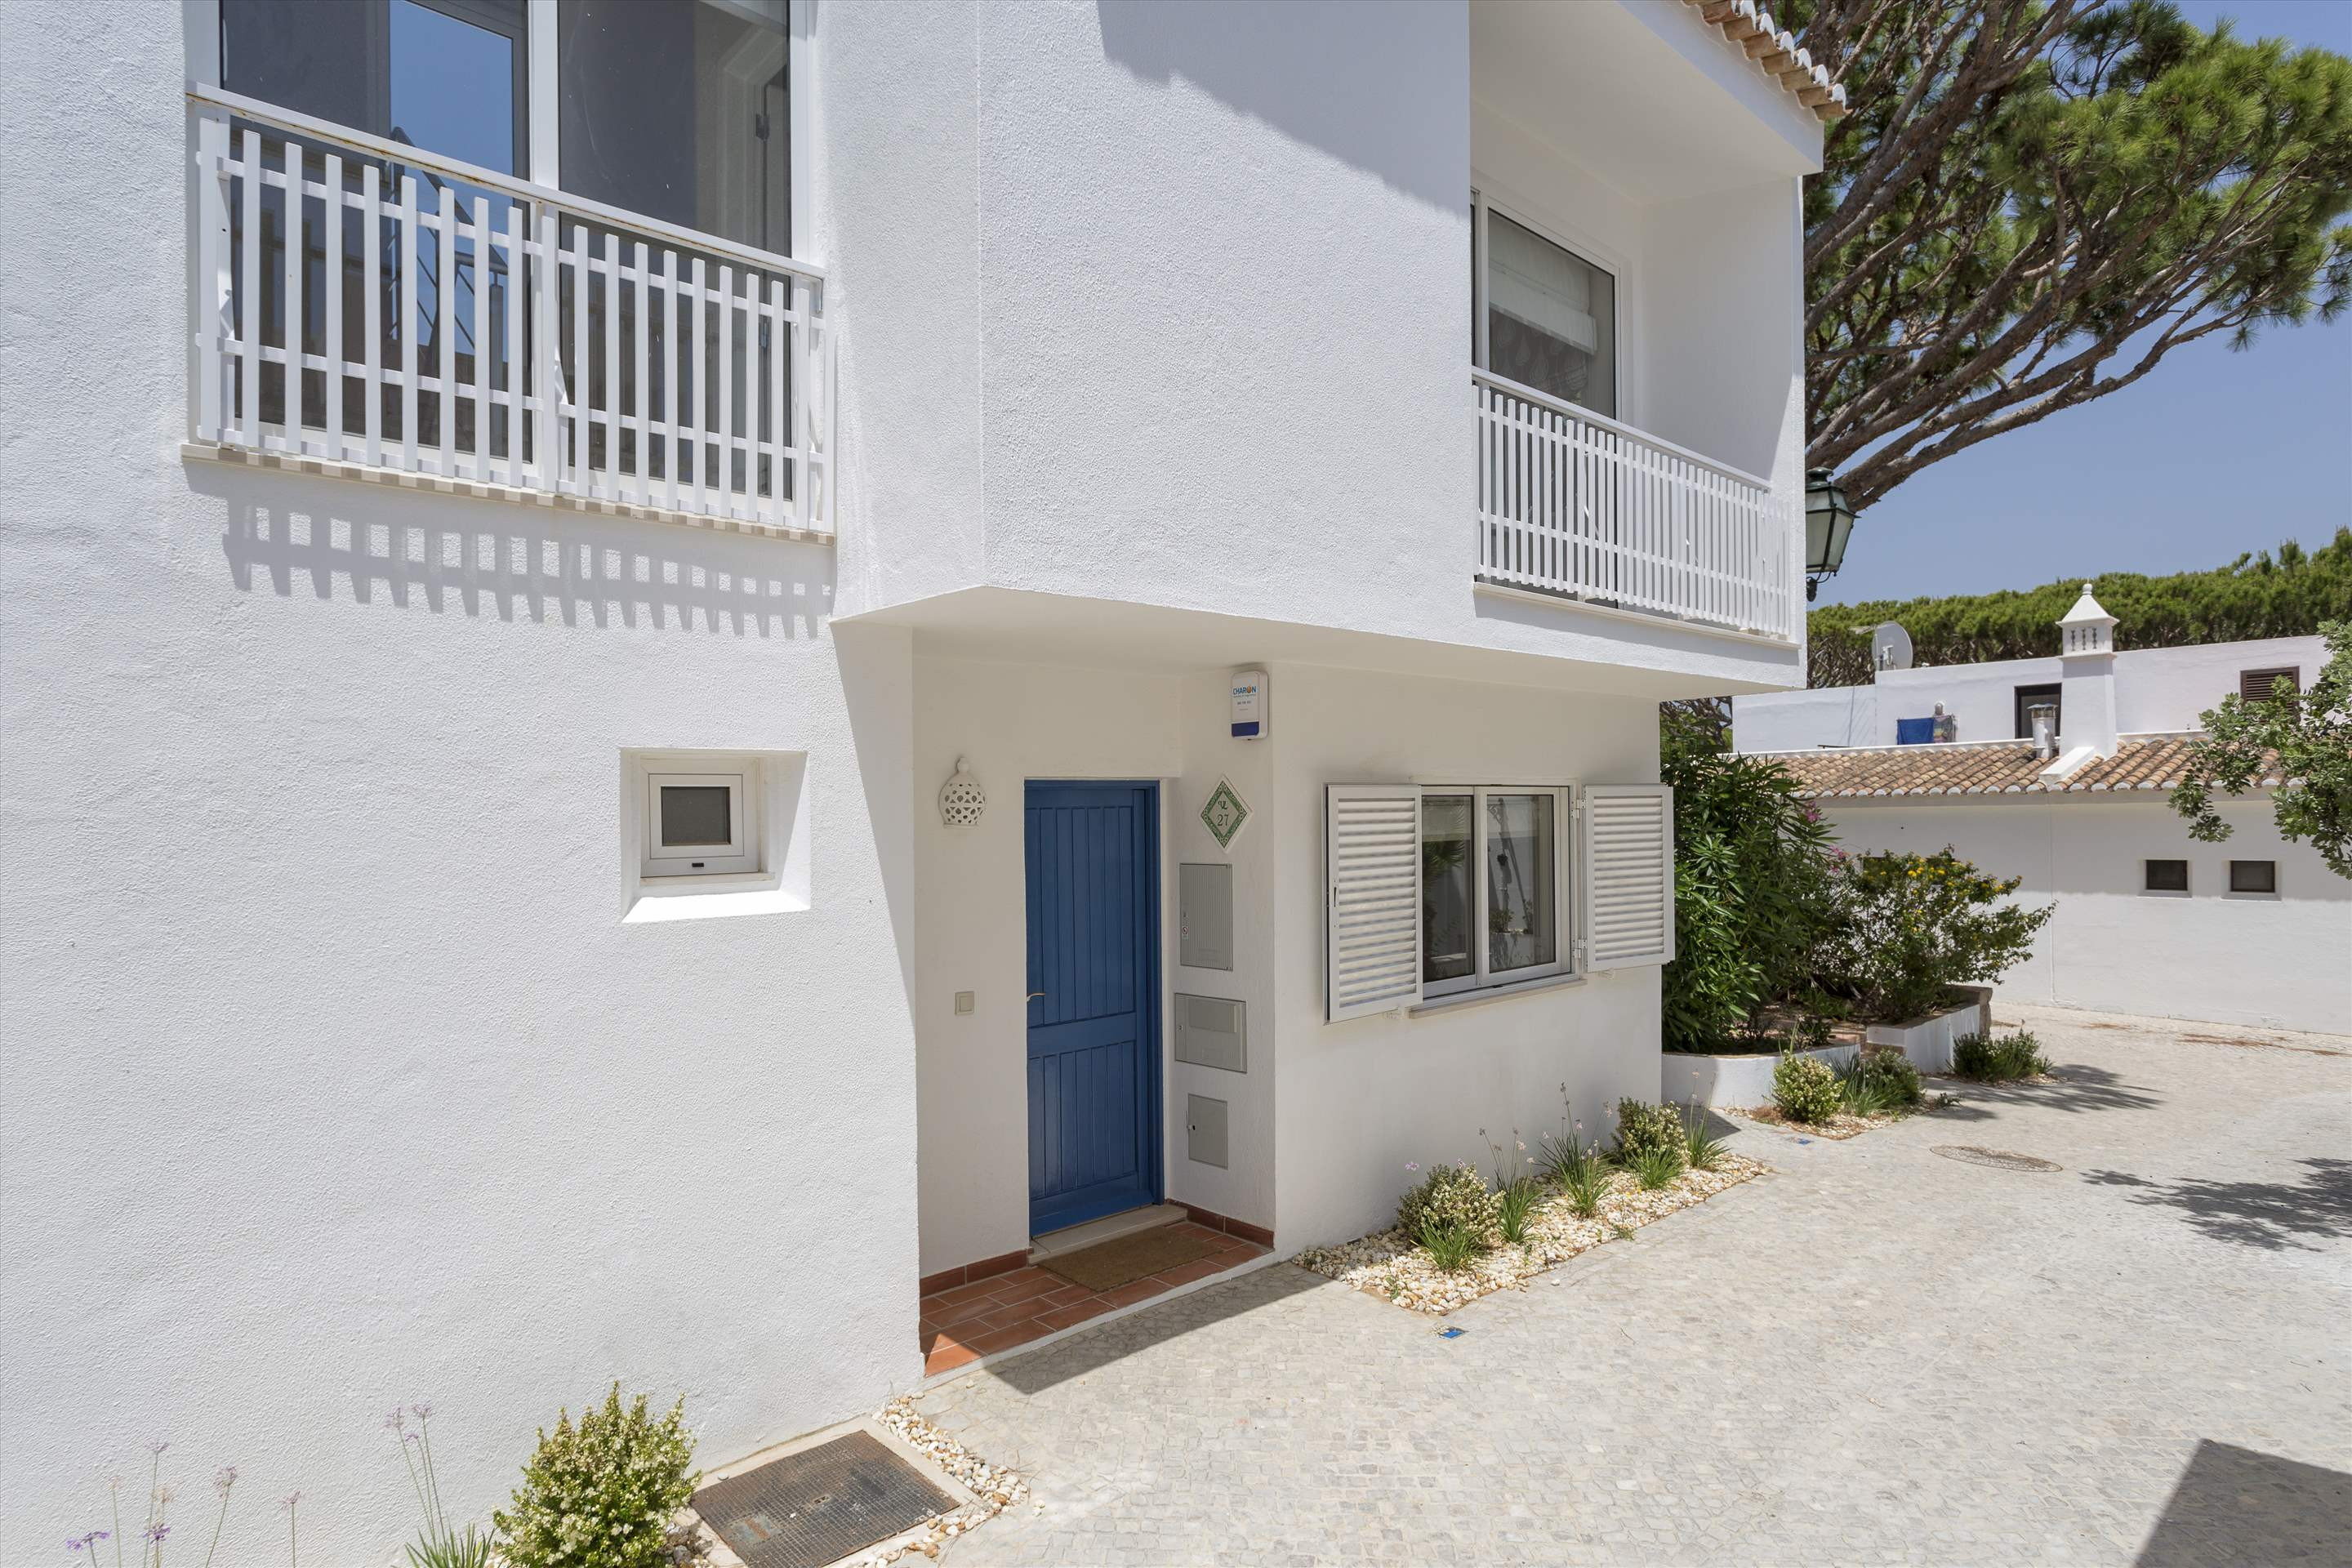 Villa Clemente, 2 bedroom villa in Vale do Lobo, Algarve